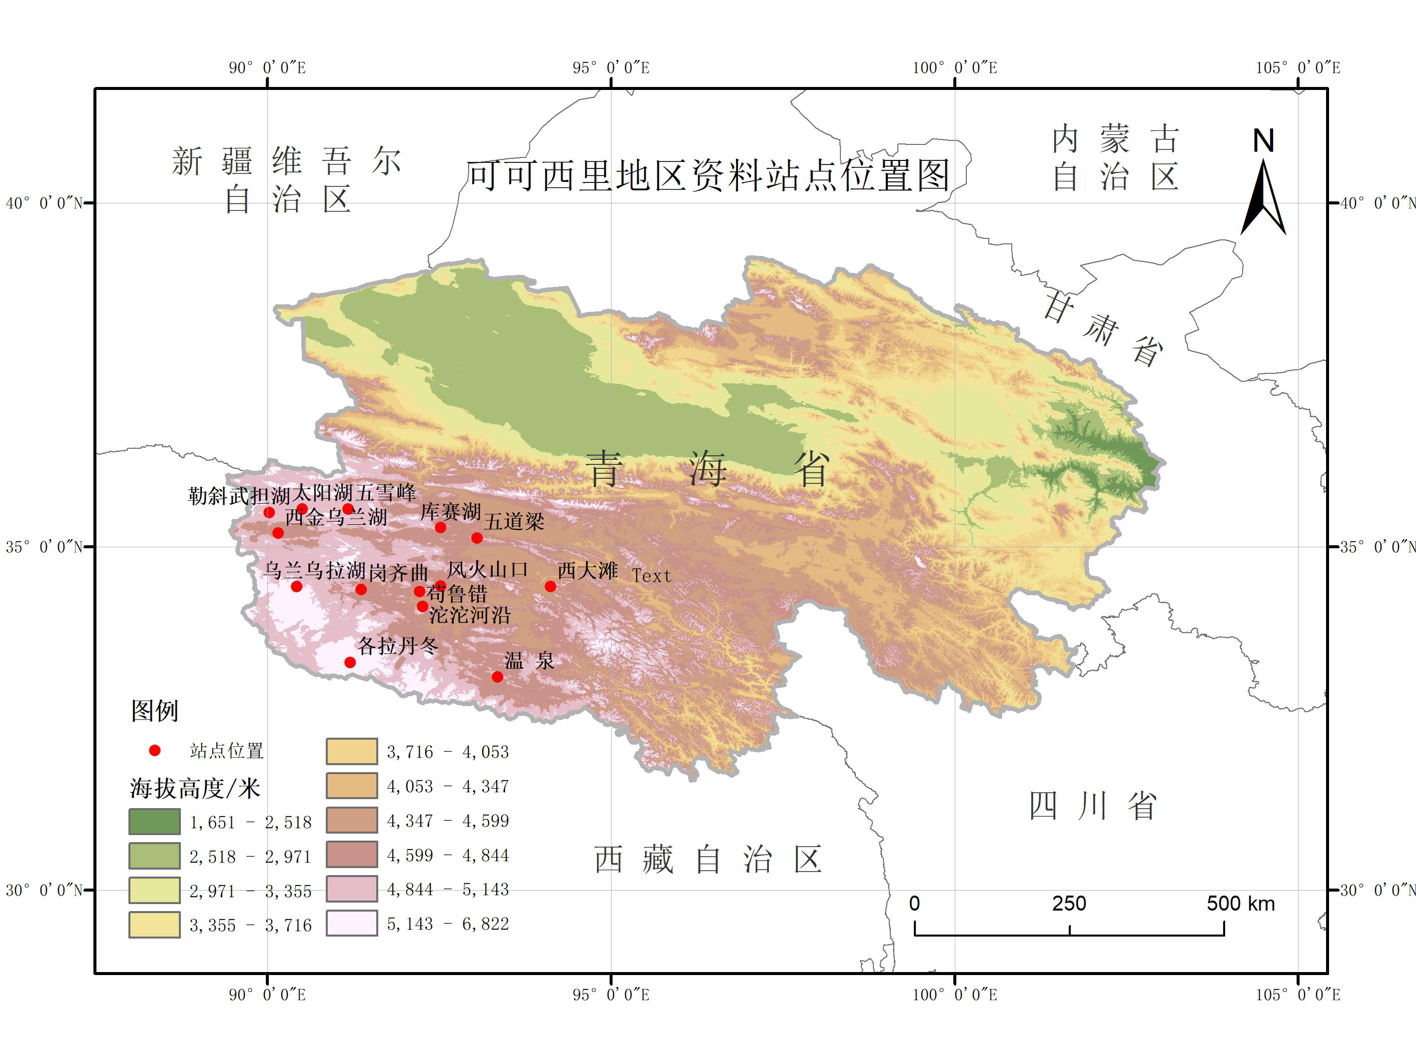 Data set of climatic elements in Hoh Xil area, Qinghai Province (1990)